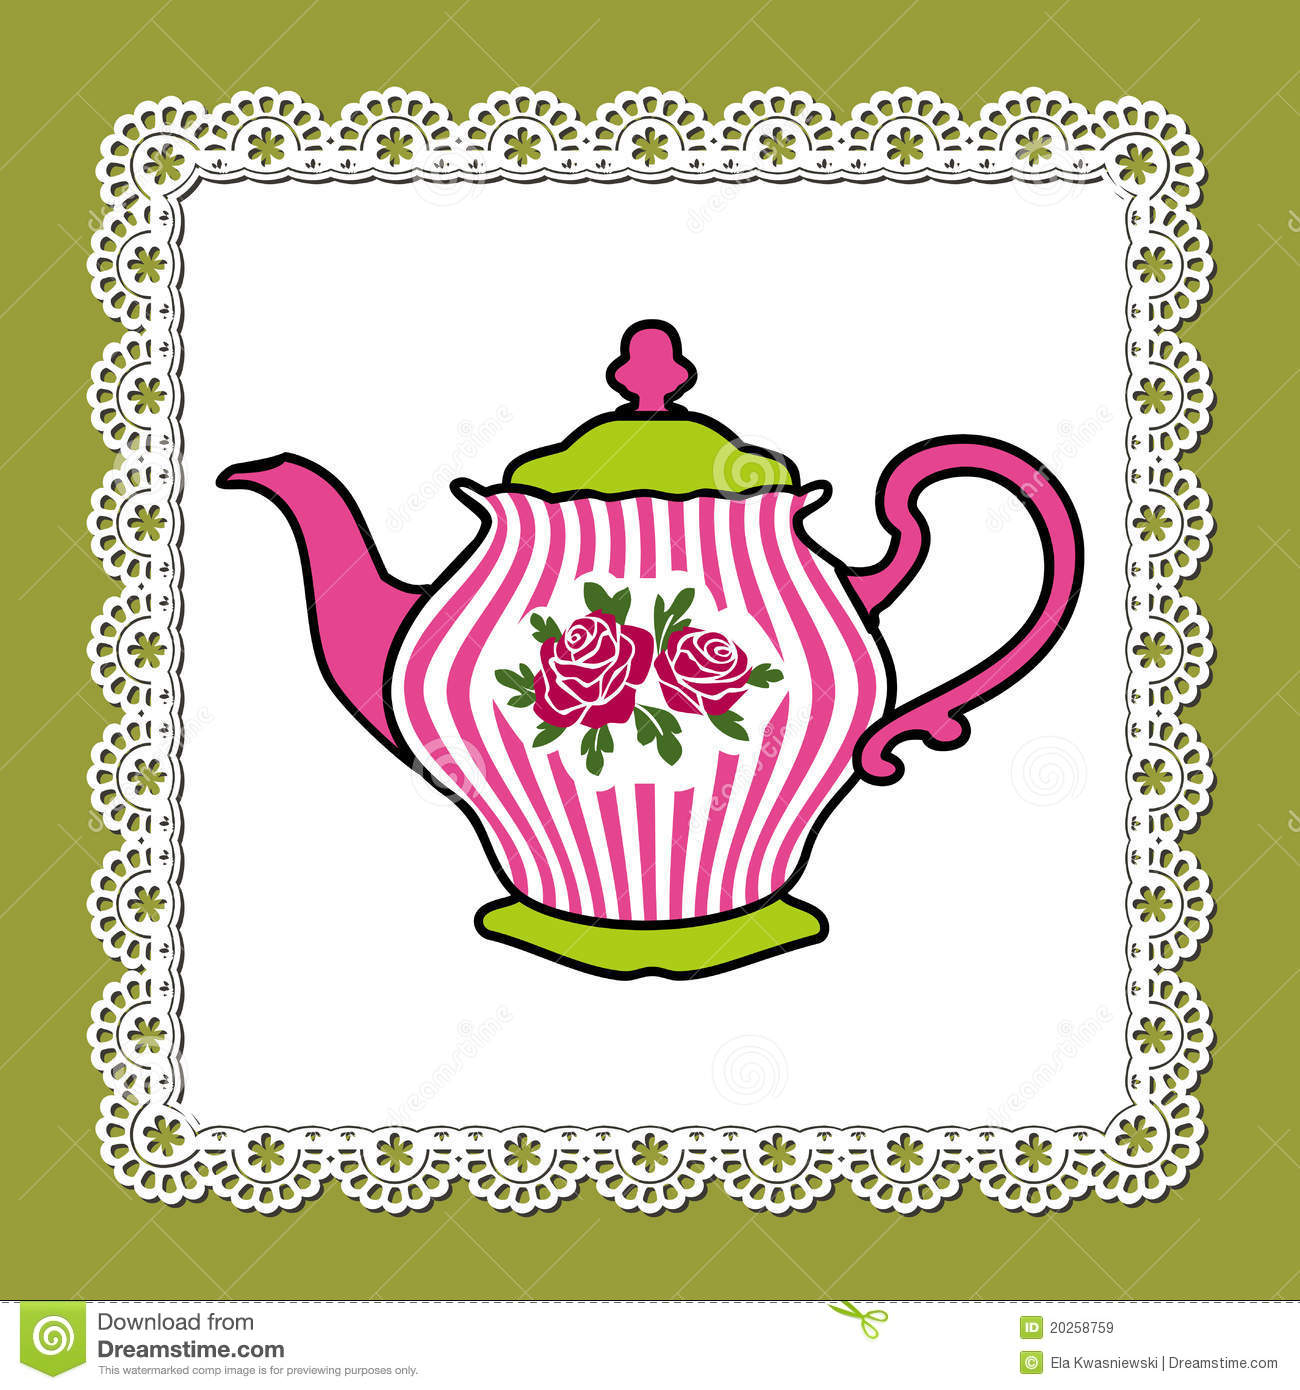 Abstract Illustration Of Pink Teapot With Roses On Lace Frame And